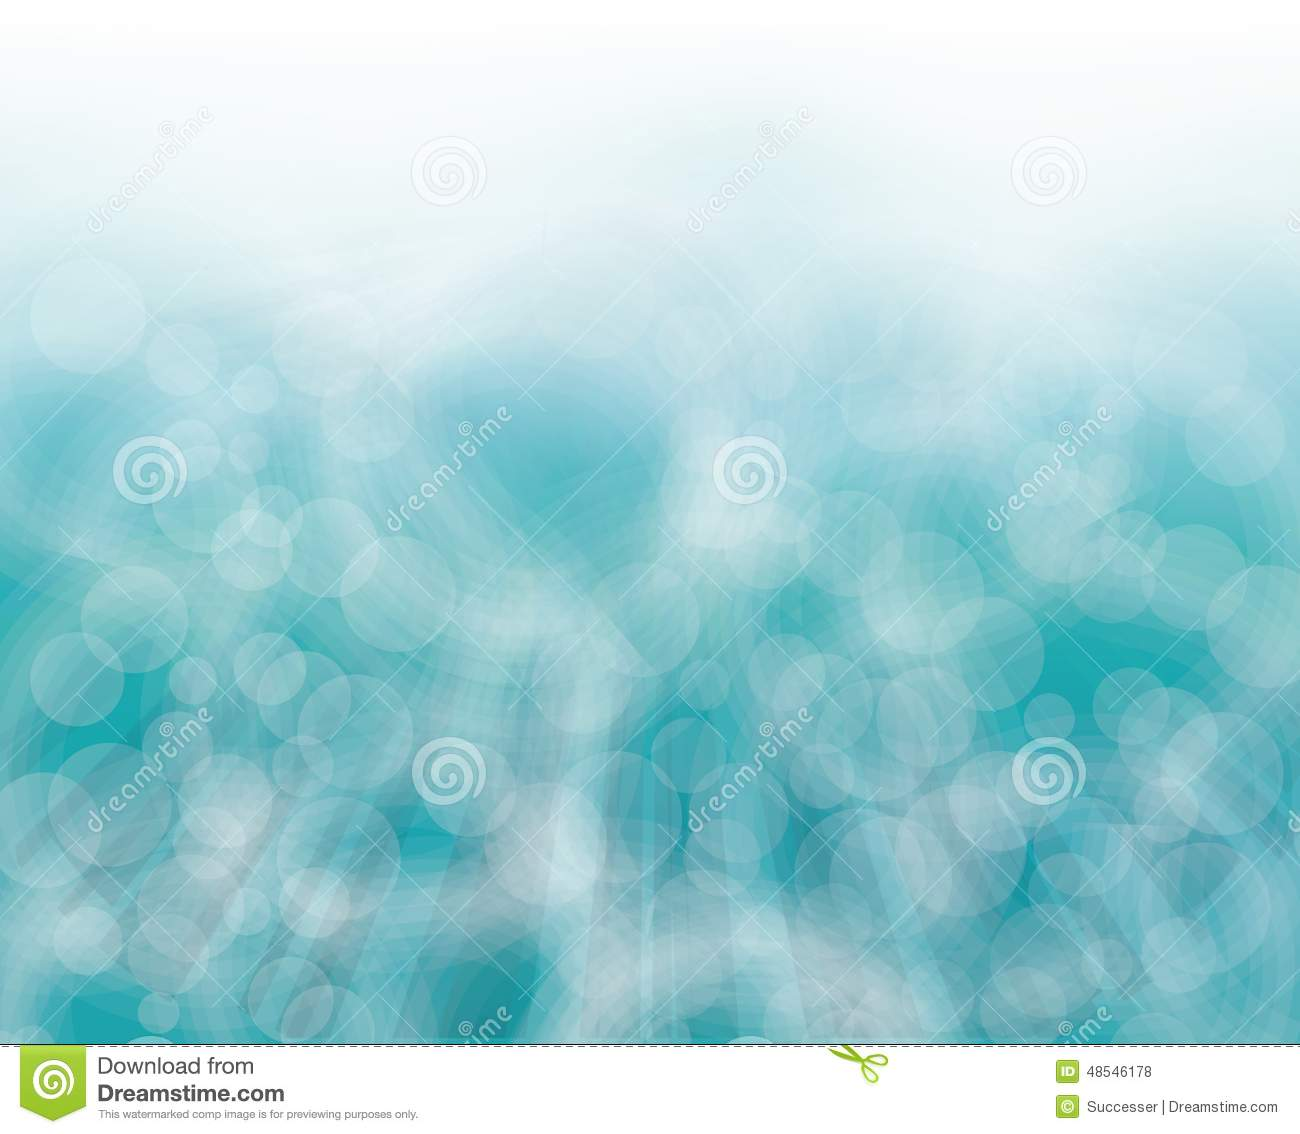 Website soft colors - Vector Soft Colored Abstract Background Web And Mobile Interfac